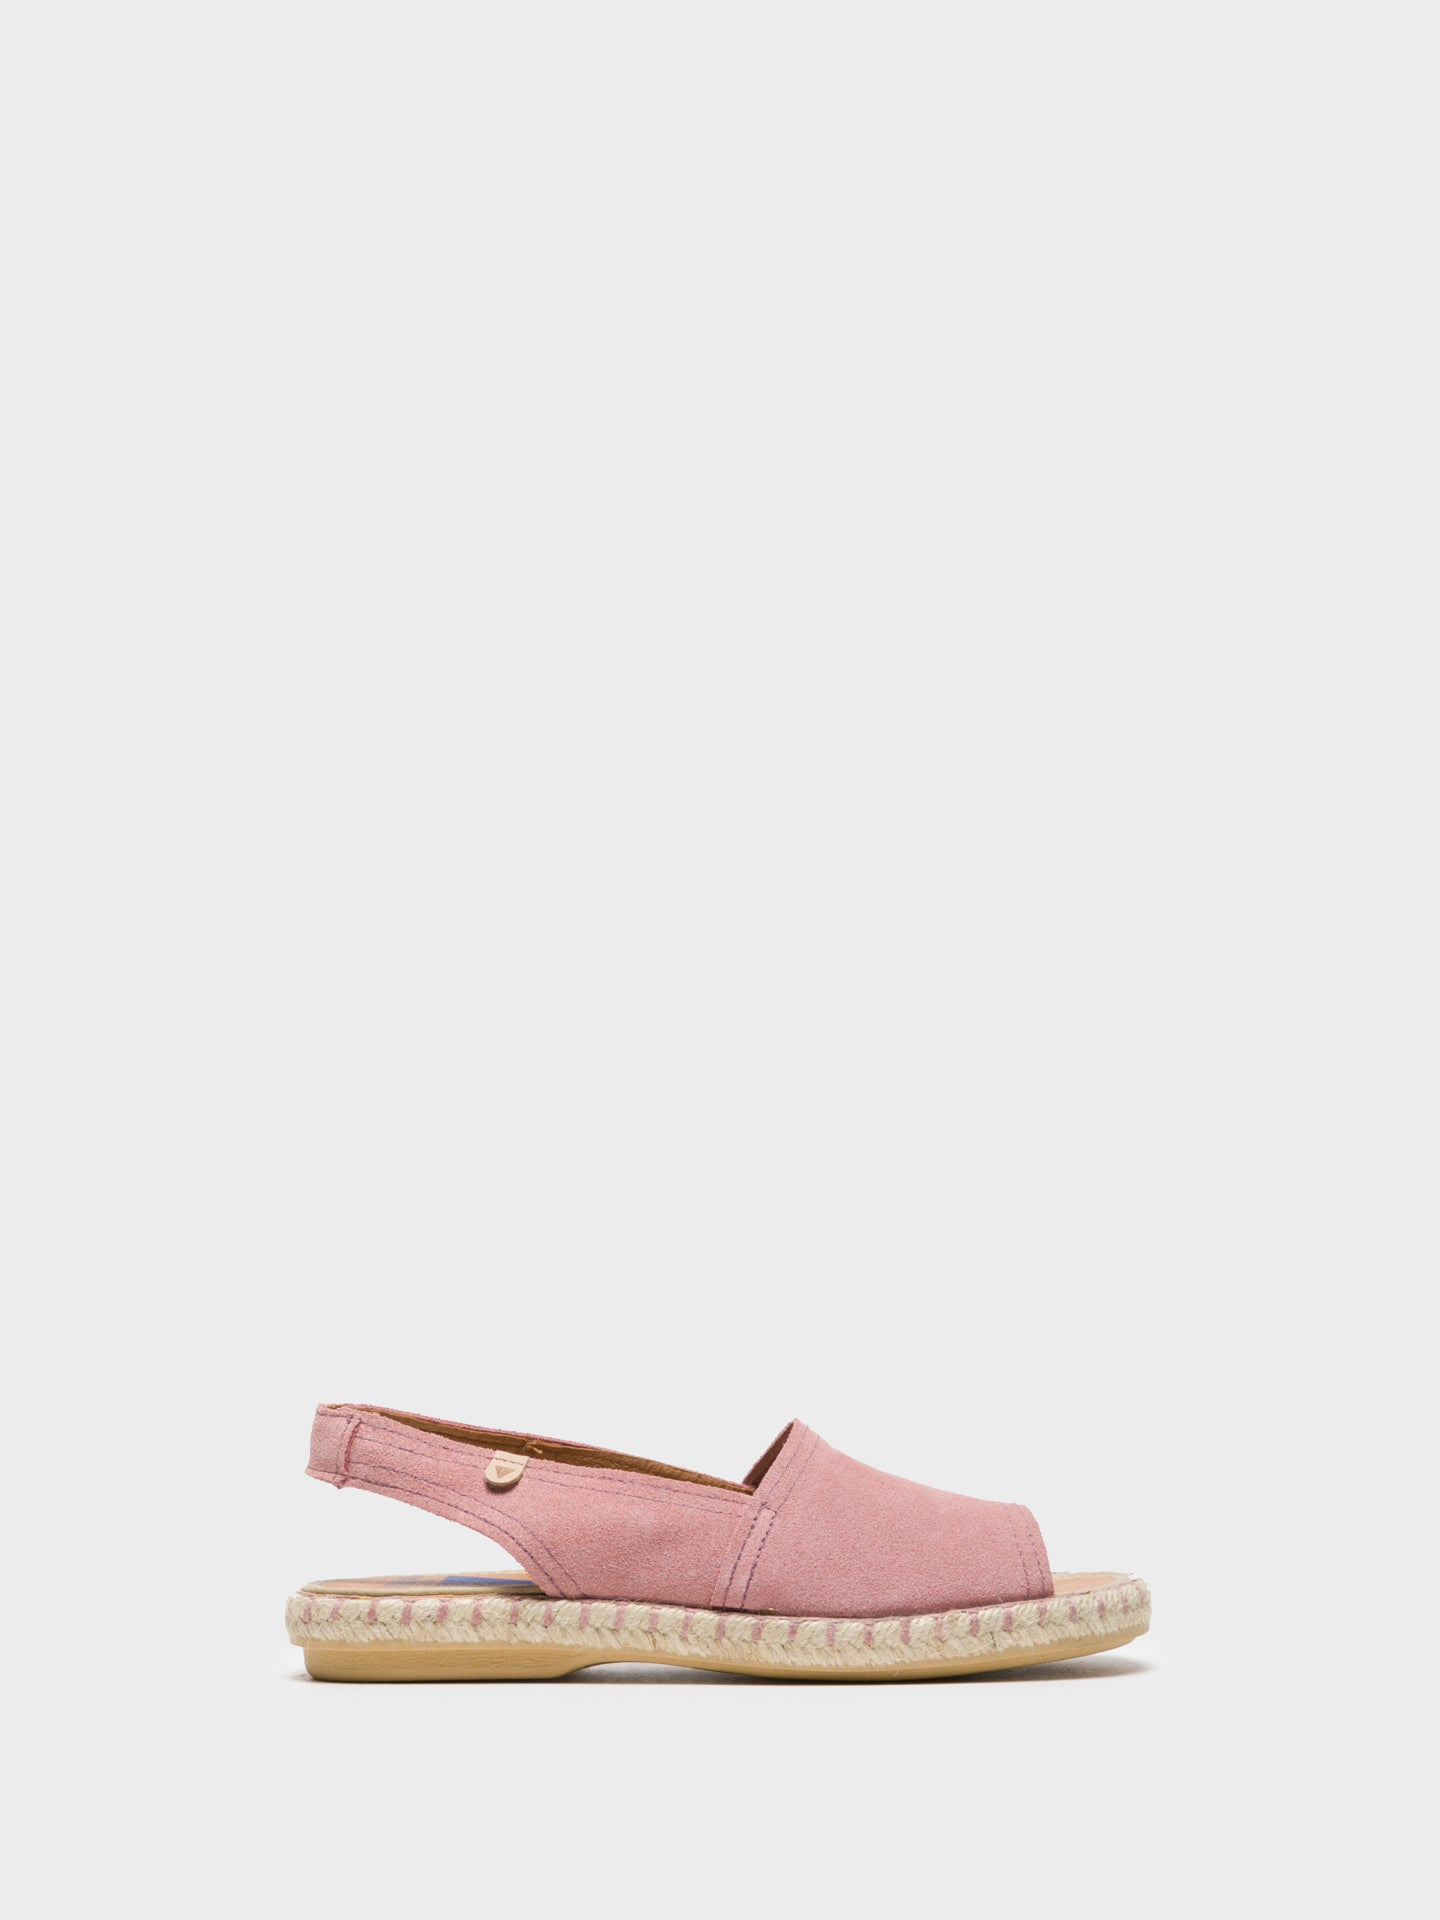 Verbenas Pink Sling-Back Sandals